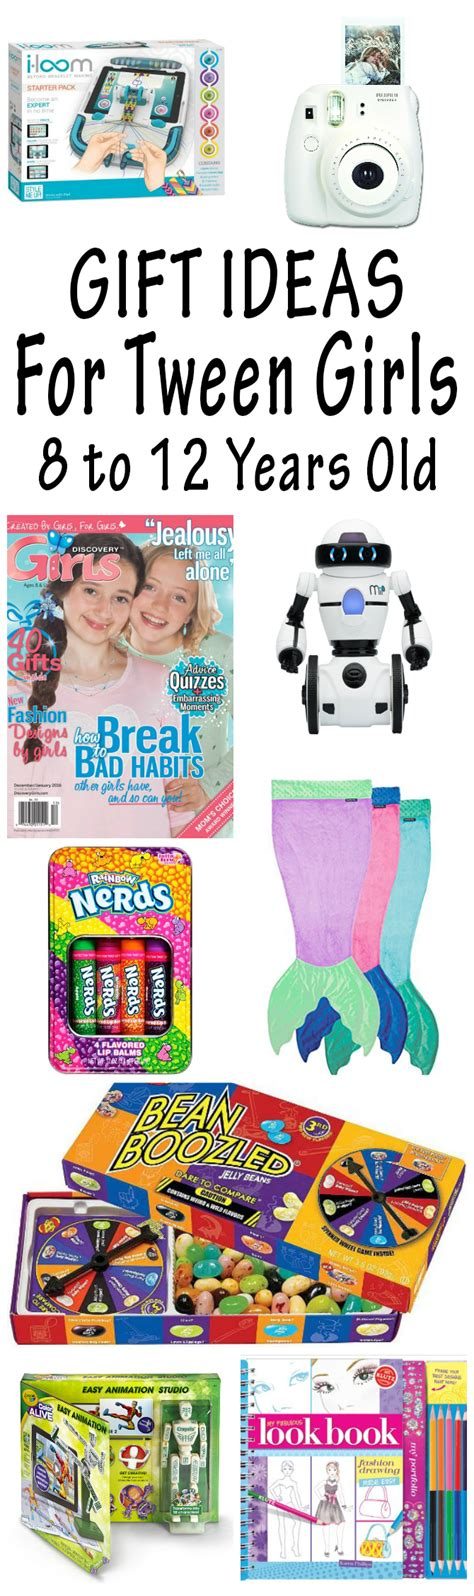 gift ideas for tween girls they will love 2017 christmas